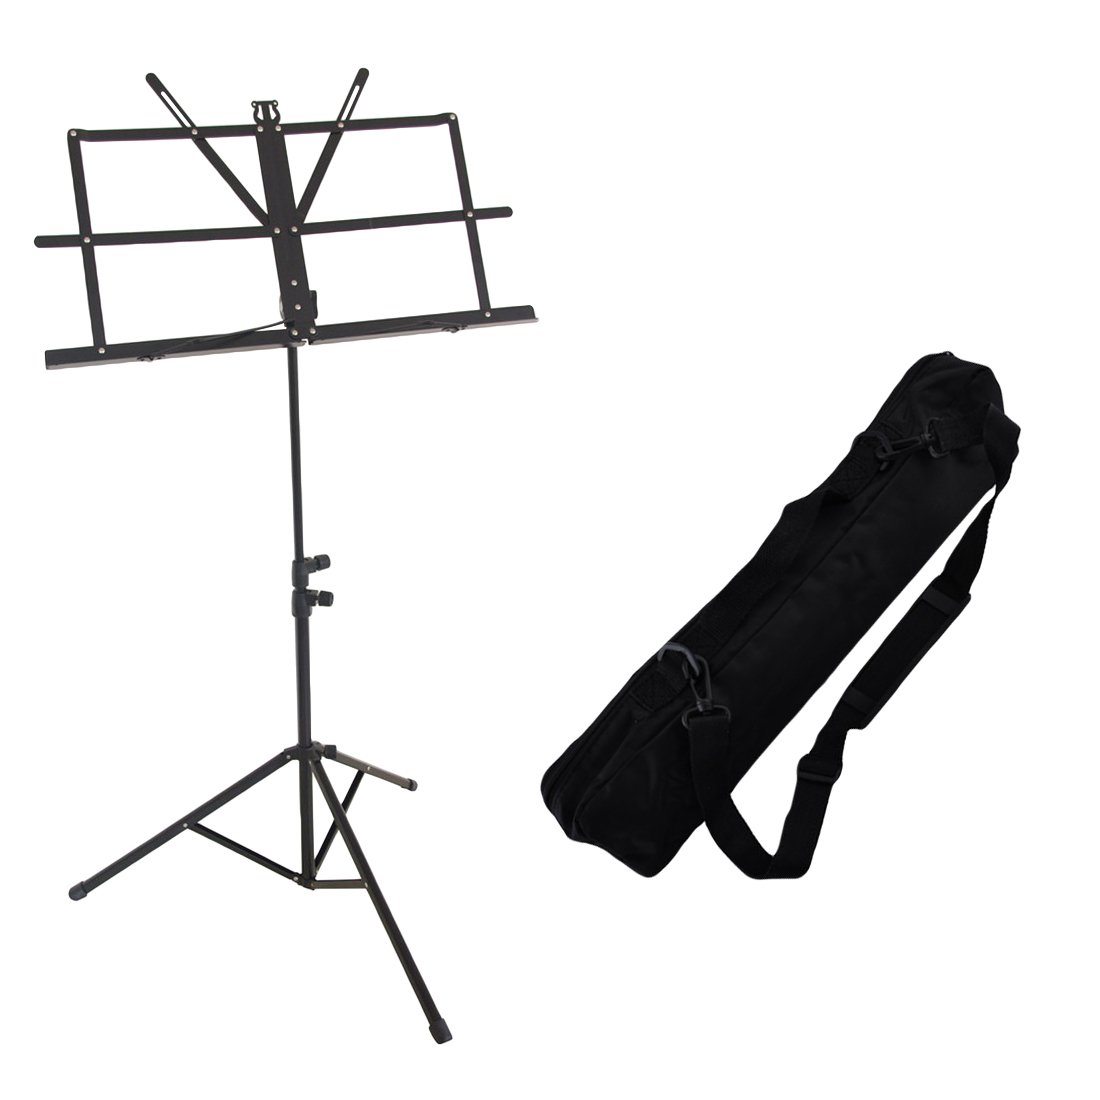 Ultra-Light Foldable Adjustable Sheet Music Stand Tripod Holder with Waterproof Carry Bag for Guitar Violin Musical Performance aluminium alloy professional fl 05r foldable small music stand musical instrument with double quilted carry bag 4 colors